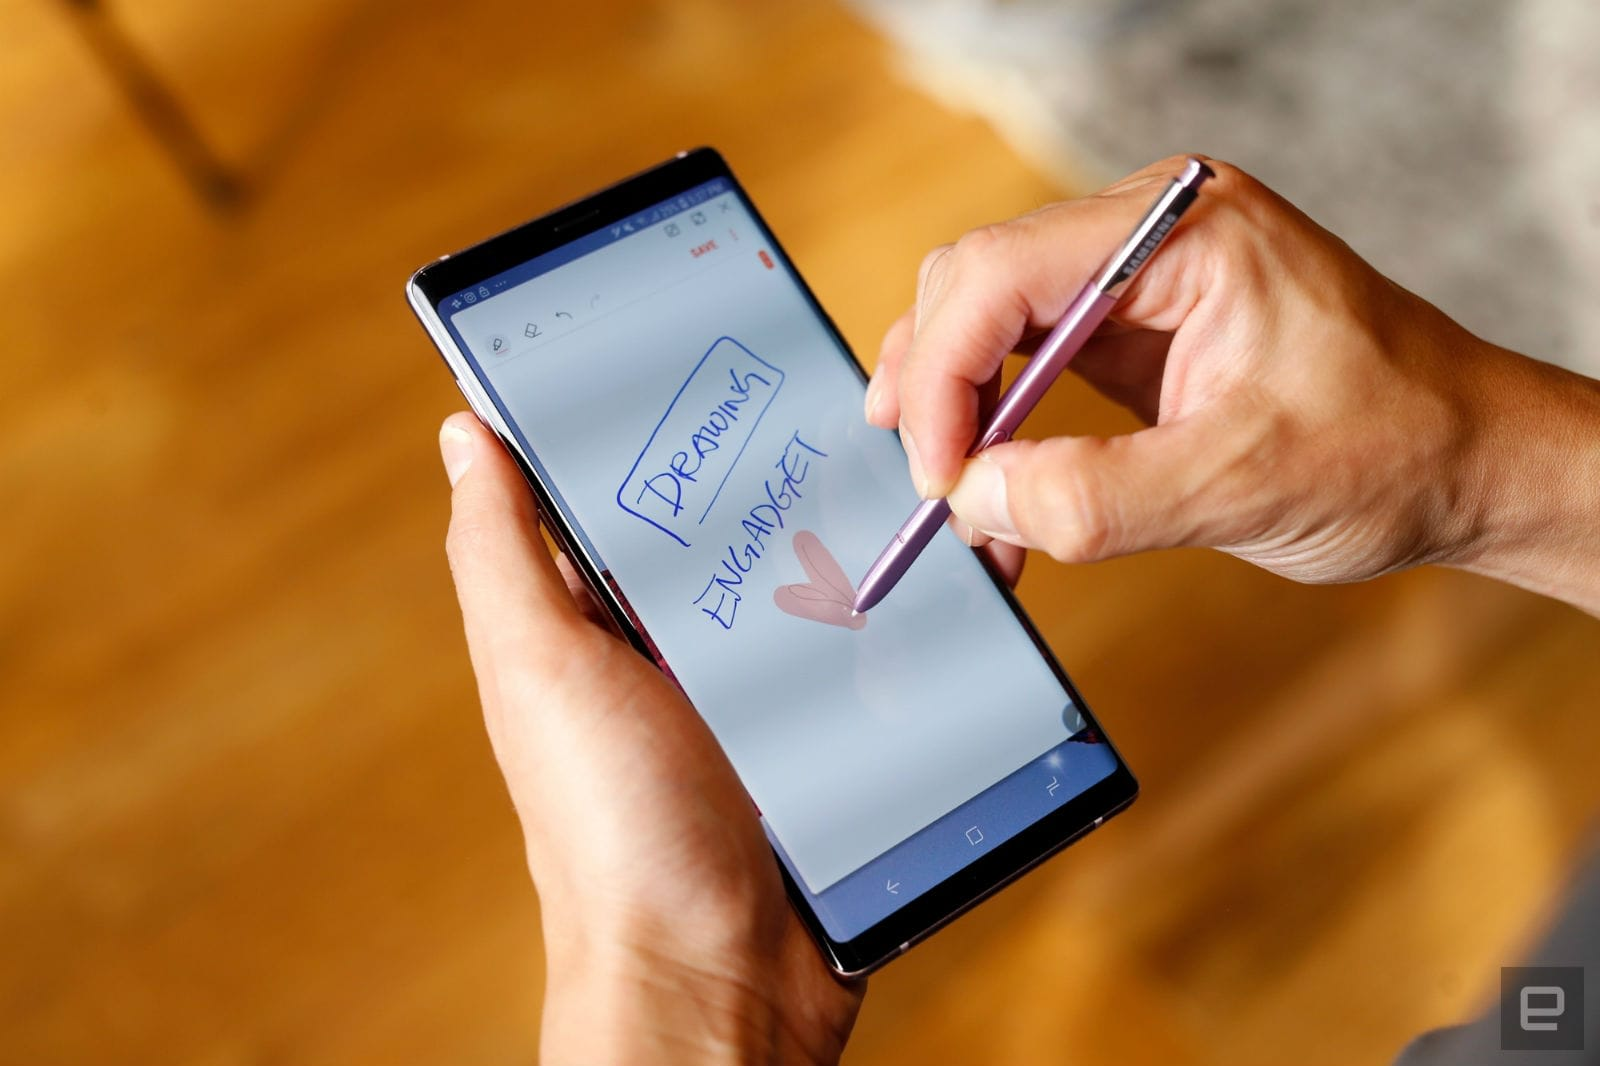 Someone at Samsung thinks a stylus with a camera is a good idea